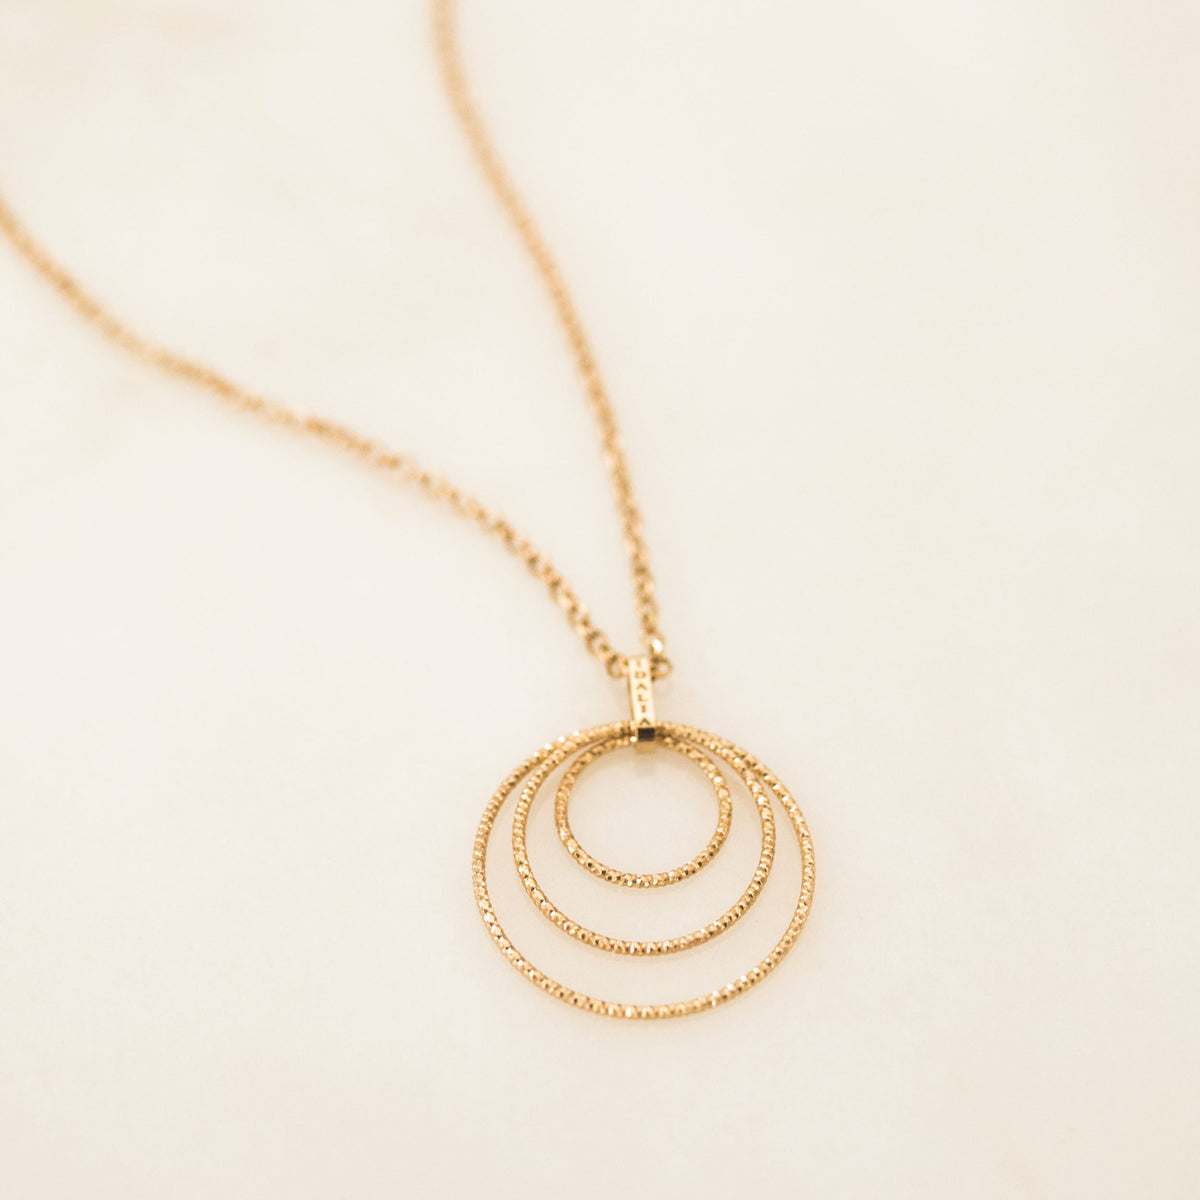 The Circle Trio Necklace